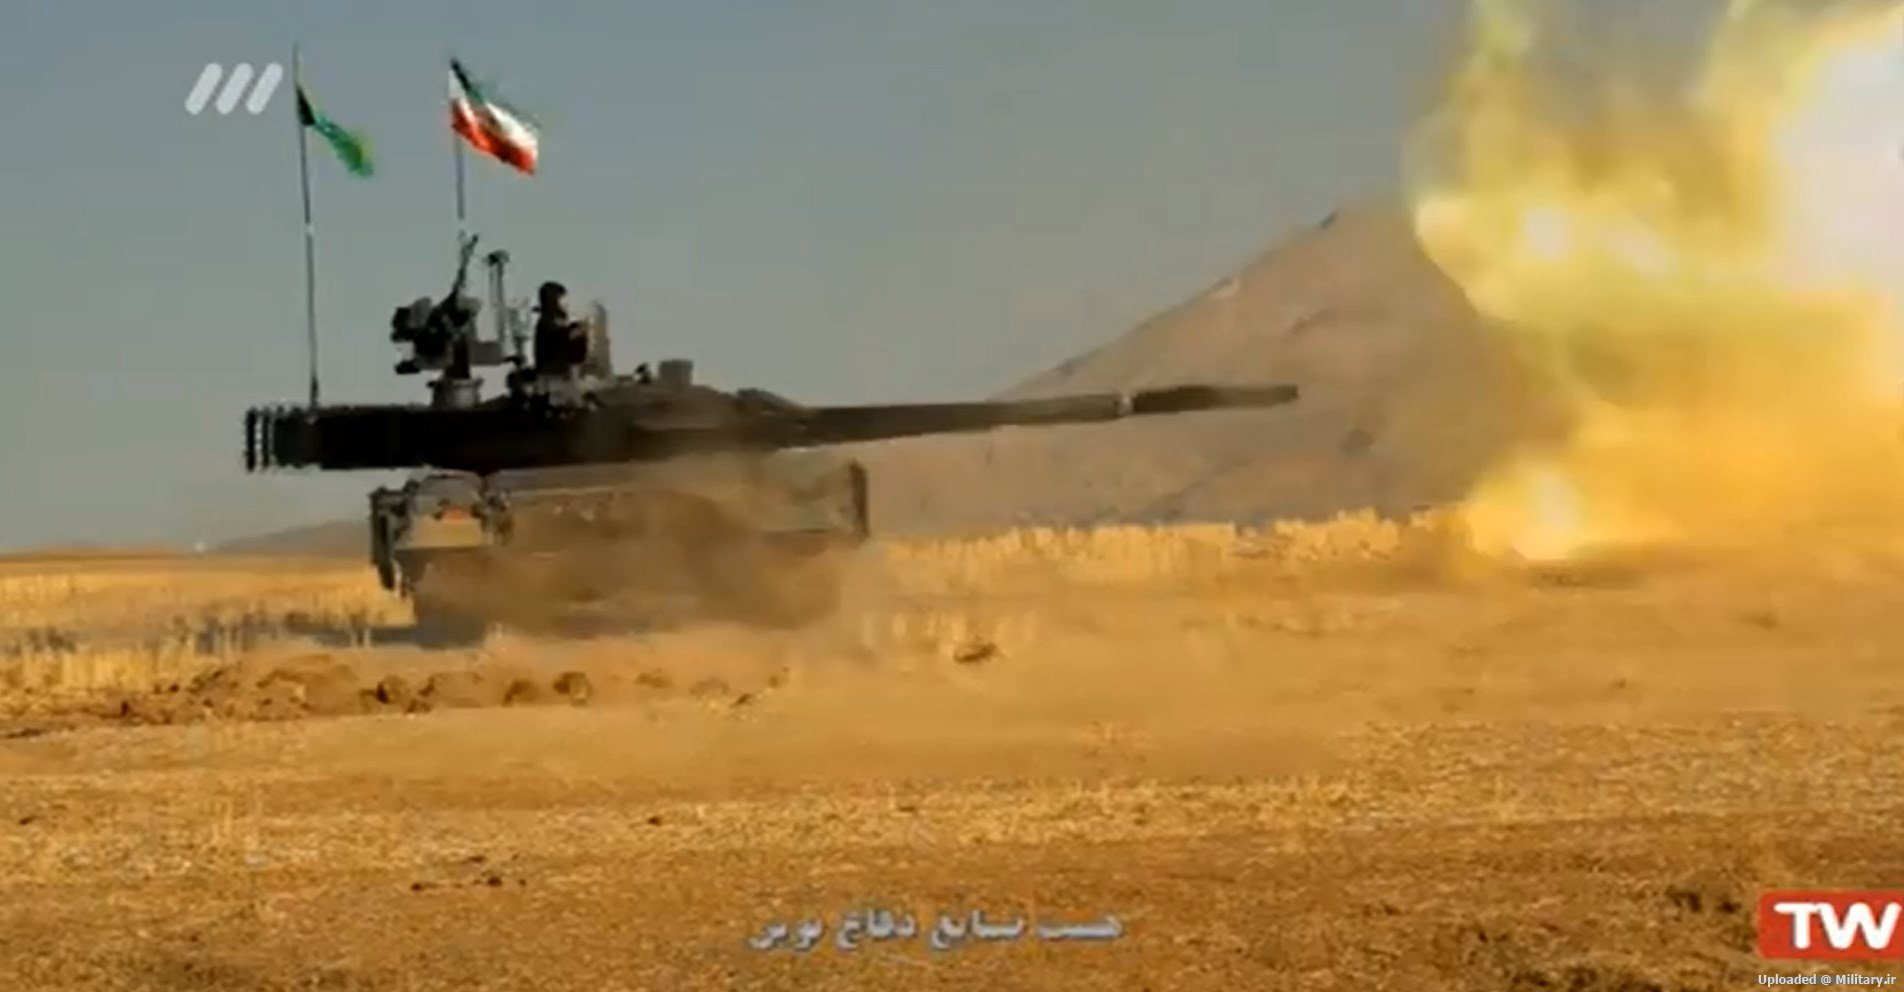 Iranian Ground Forces | News and Equipment - Page 3 Bandicam_2016-08-25_11-53-03-787_mp4_snapshot_01_00_5B2016_08_25_12_05_175D